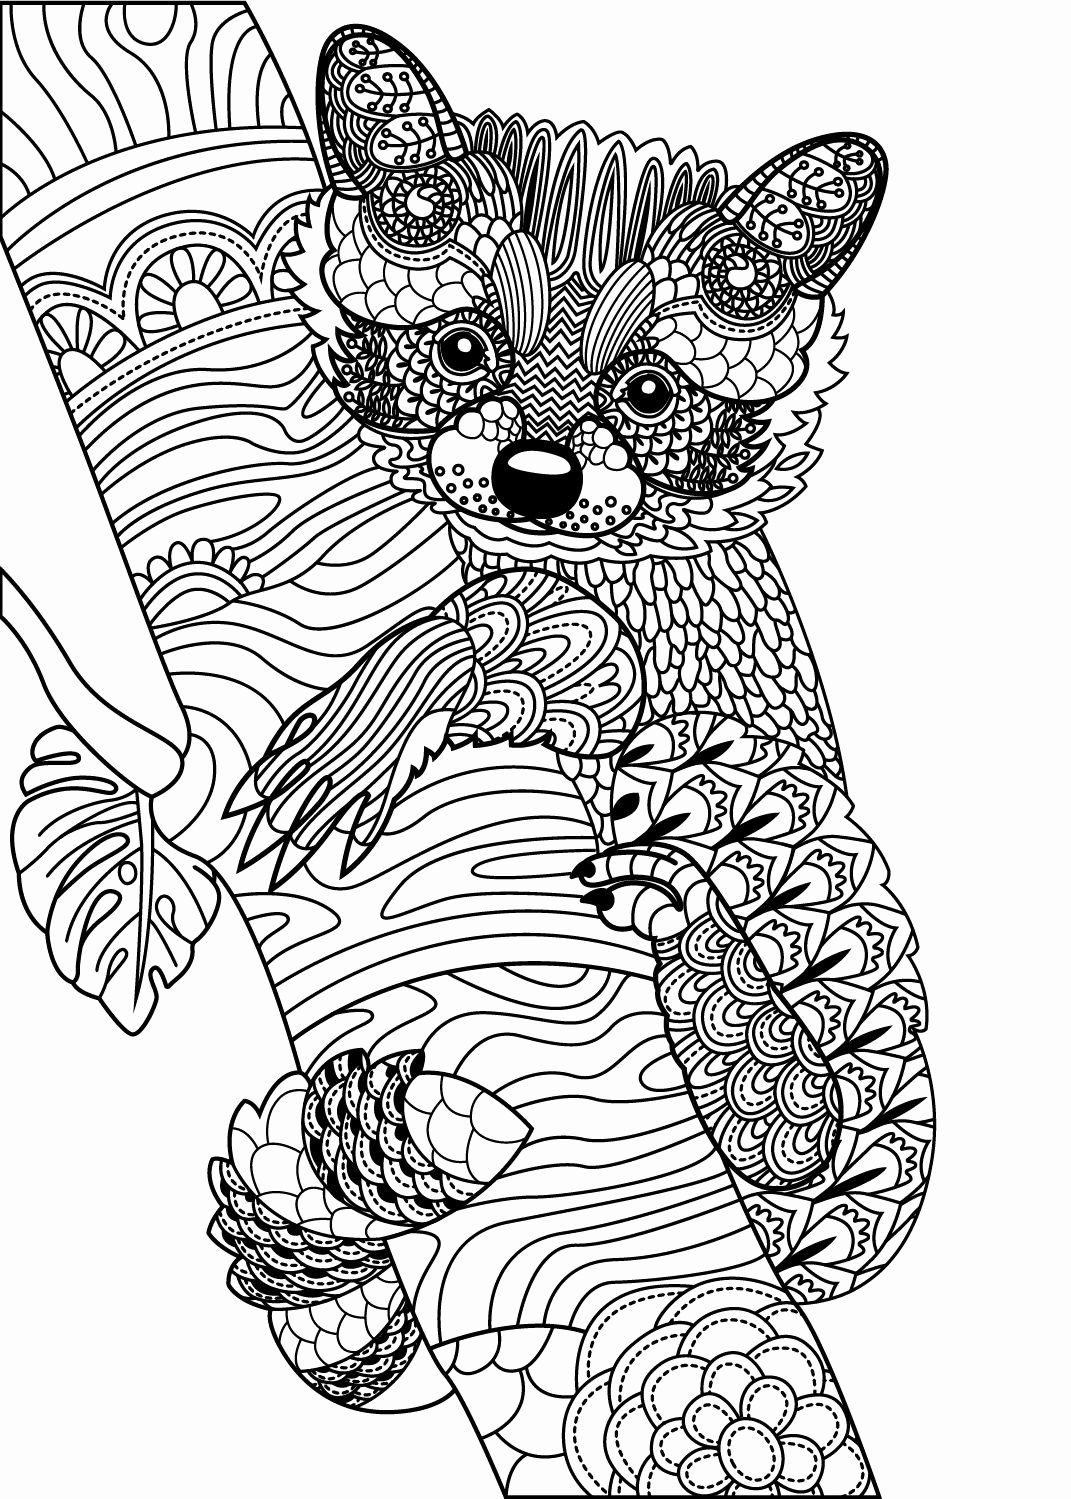 Animal Coloring Pages For Adults Printable Beautiful Coloring Pages 48 Marvelous Animal Coloring Pa In 2020 Animal Coloring Pages Fox Coloring Page Bear Coloring Pages